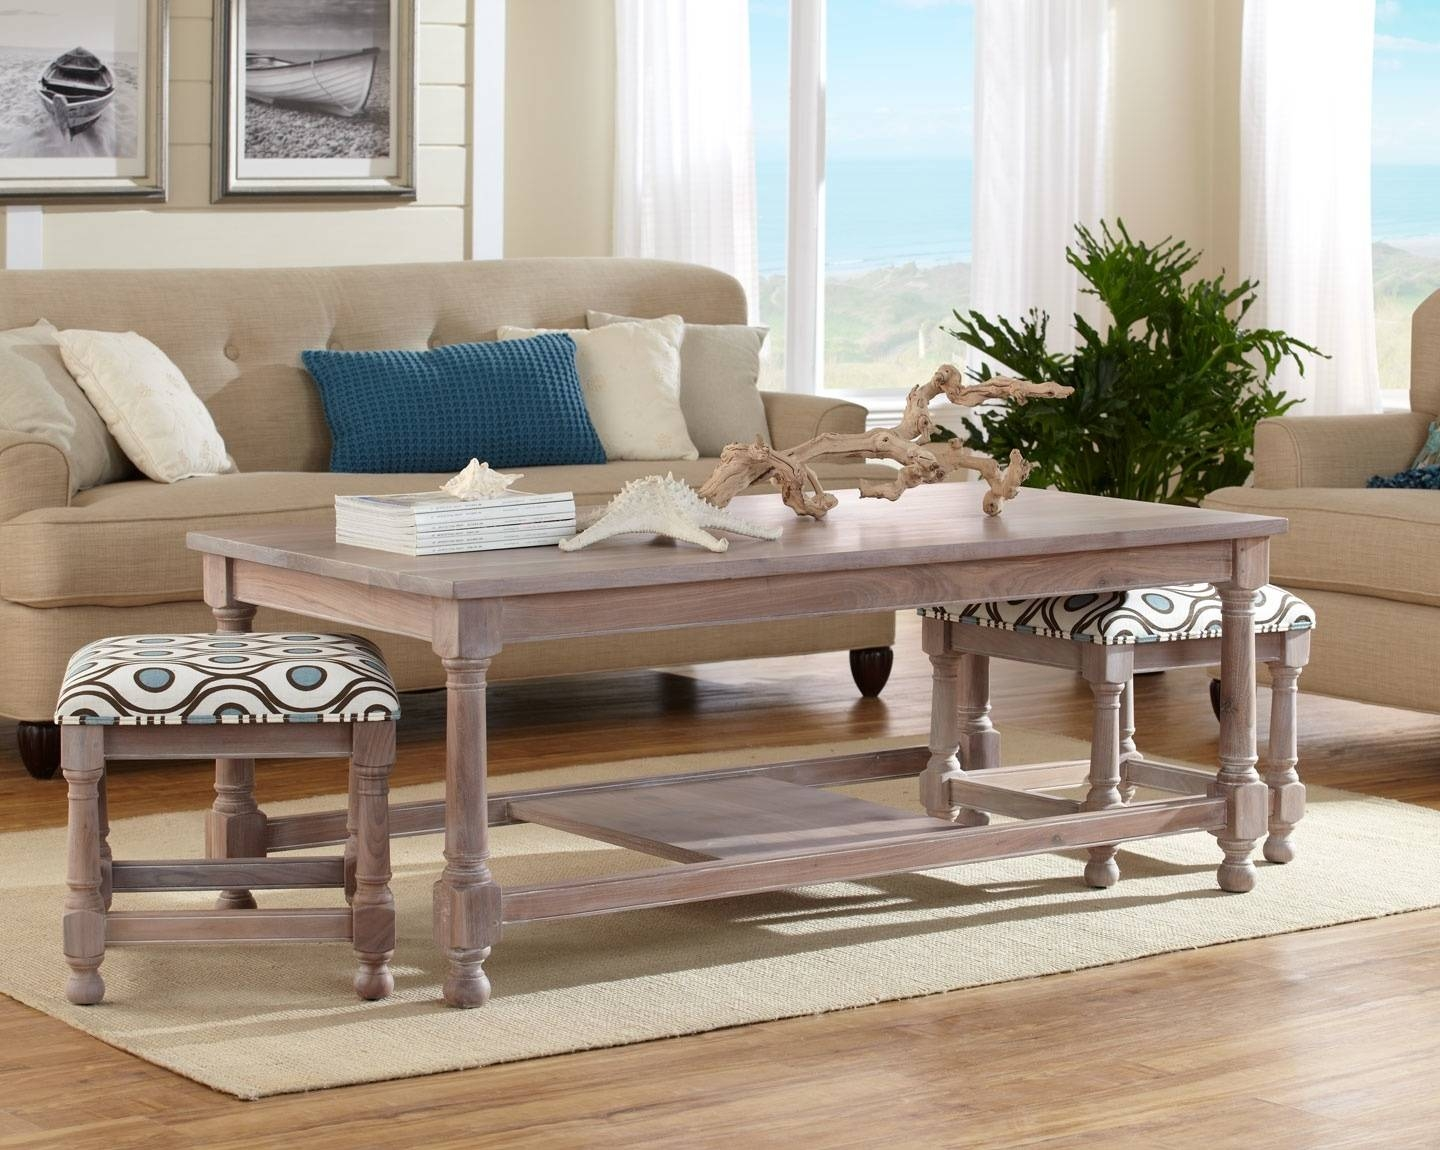 Coffee Table With Nesting Stools | Home Design Ideas With Regard To Coffee Tables With Nesting Stools (View 2 of 30)